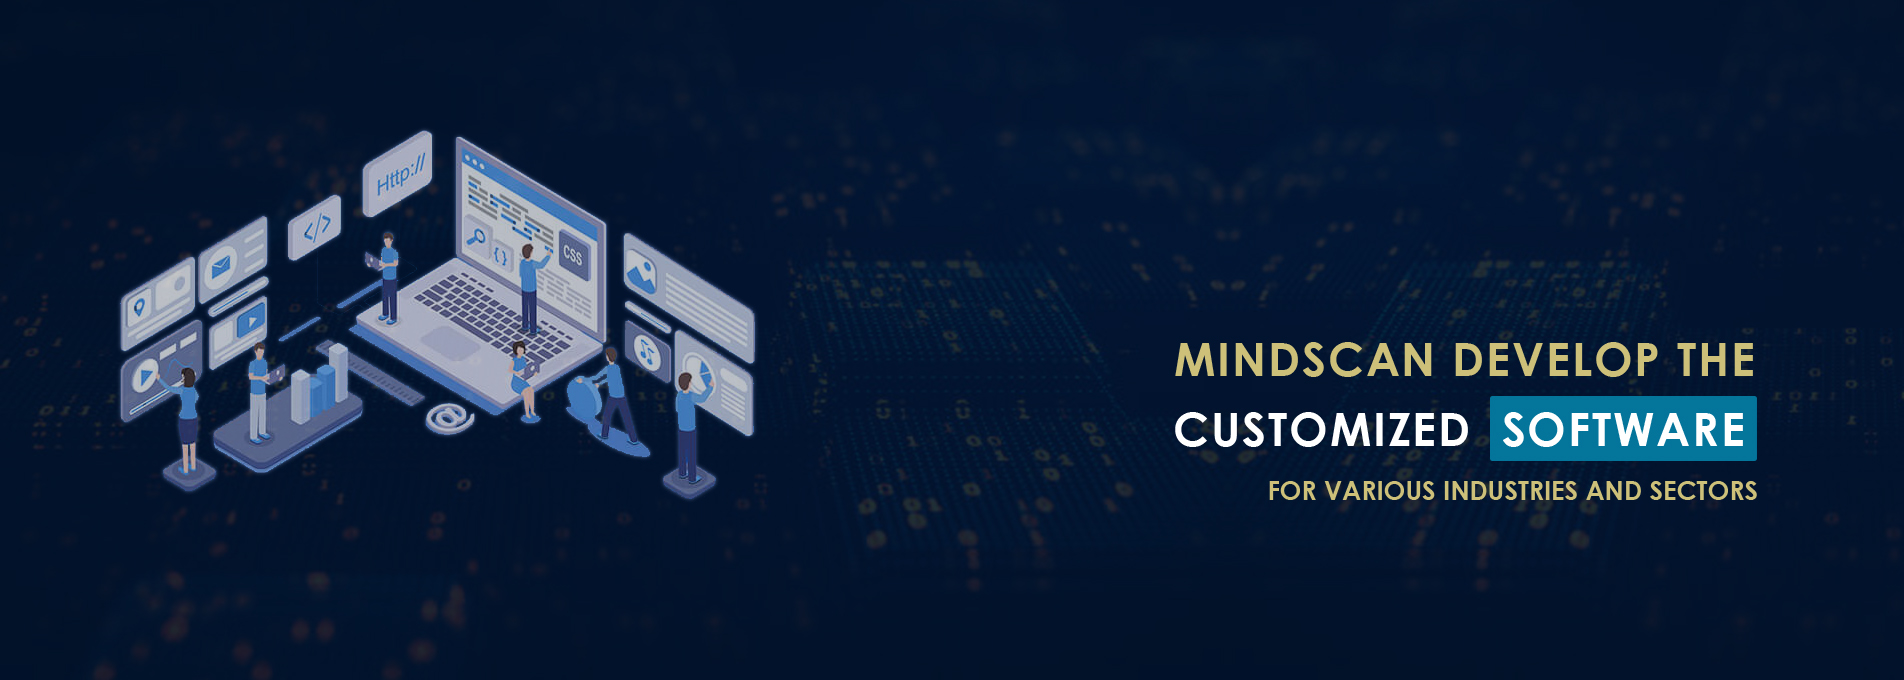 Website Designing Company In Delhi India Software Developement Company In Rohini App Development Compnay Web Development Company Payment Integration Web Hosting Company Ecomerce Development Company